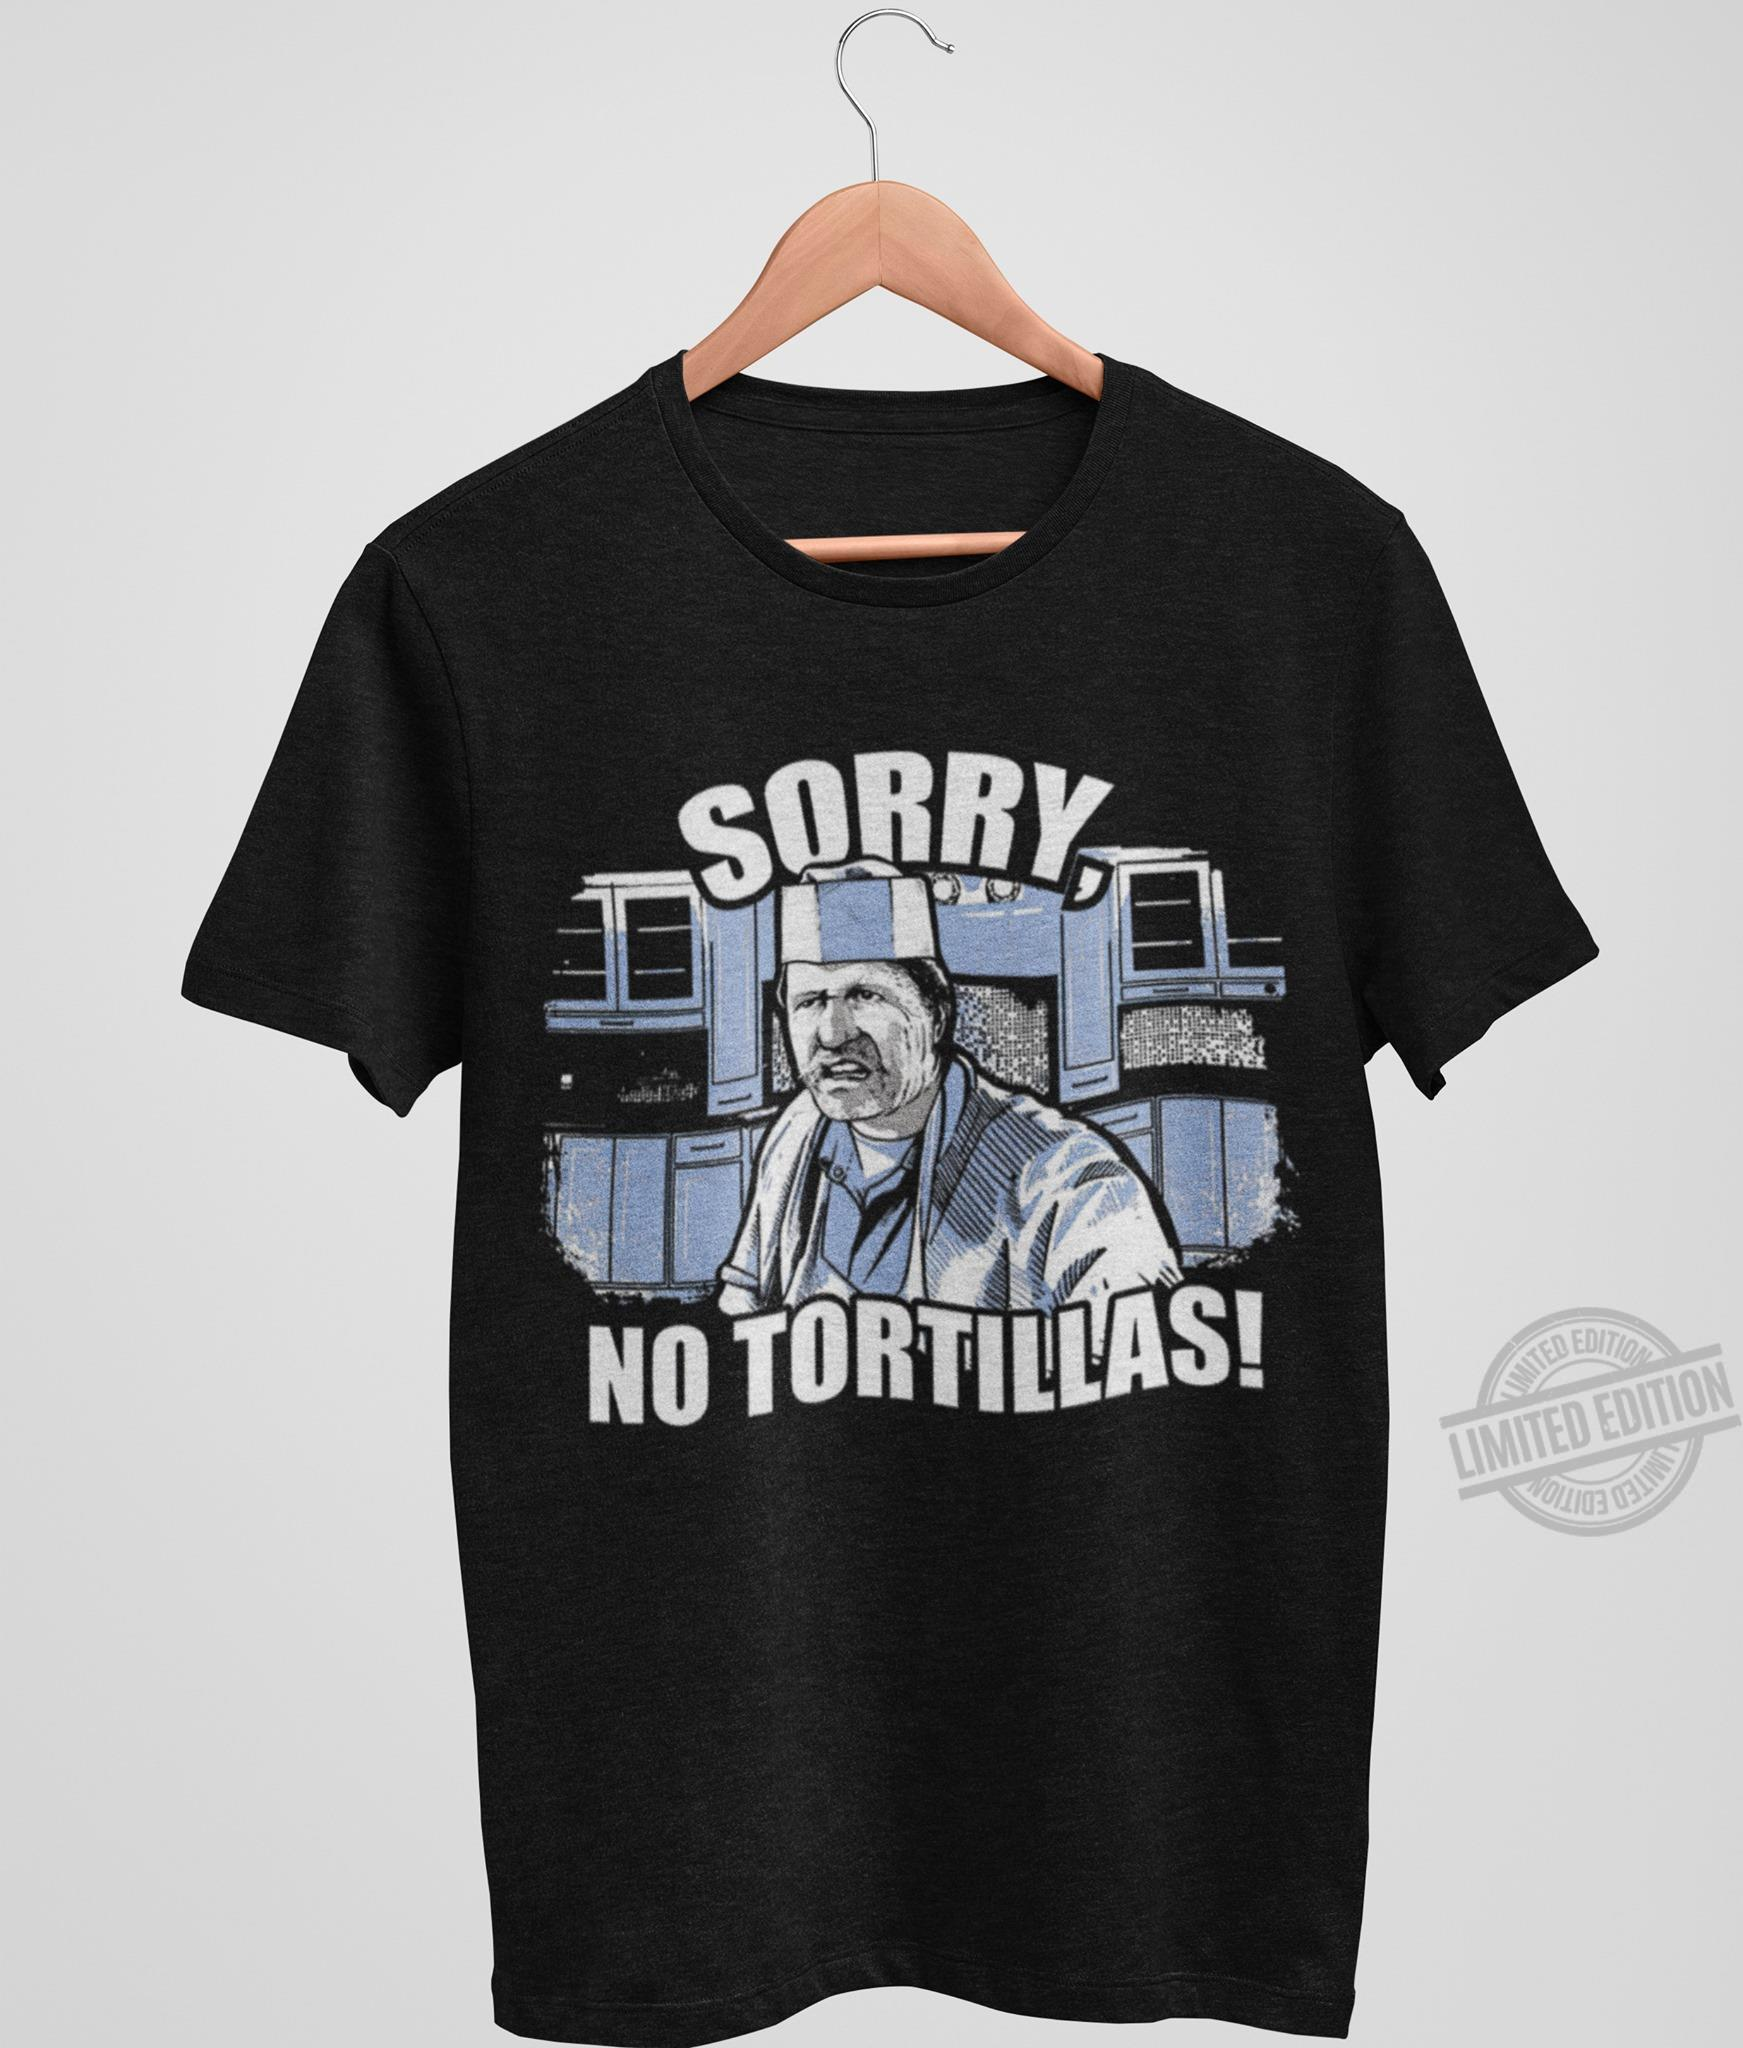 Sorry No Tortillas Shirt